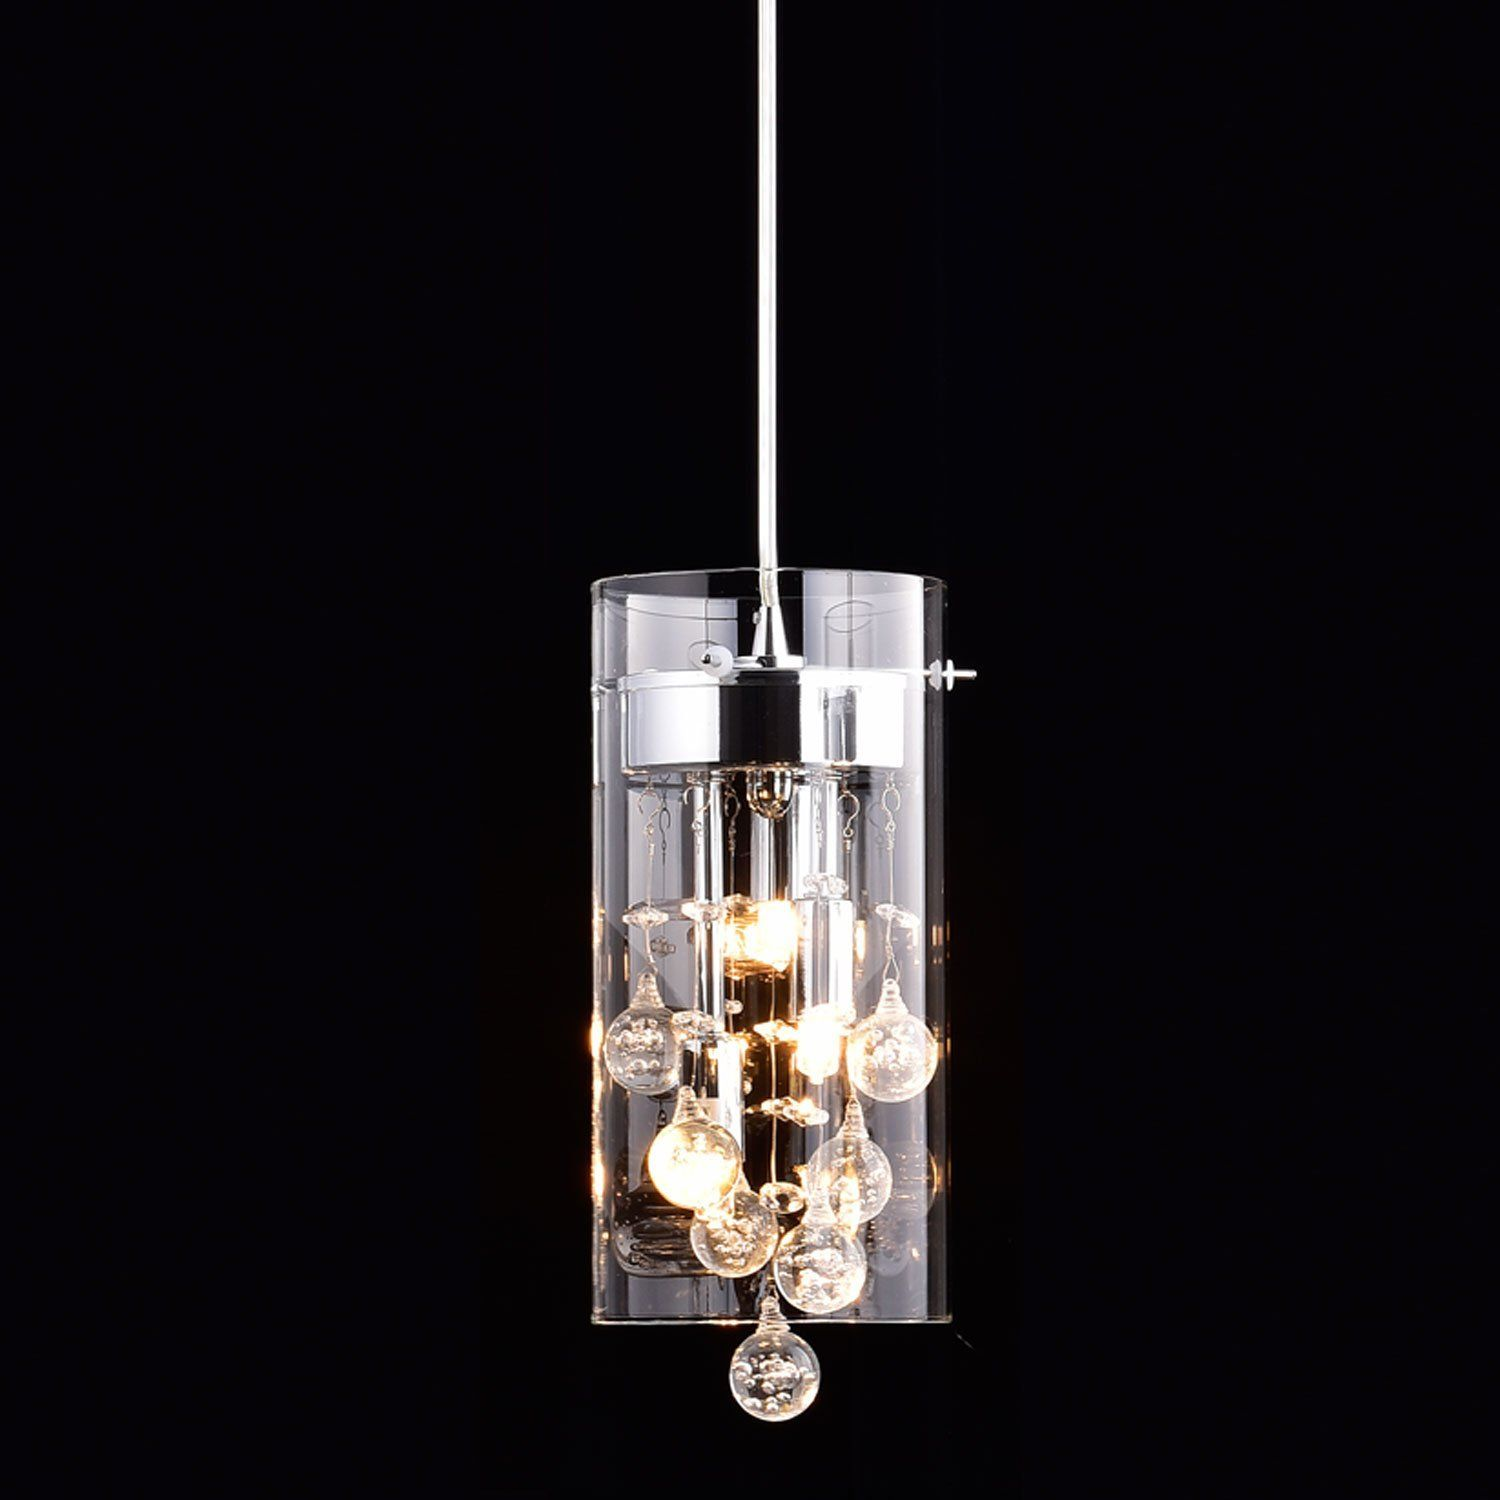 Claxy Ecopower Lighting Glass Crystal Pendant Lighting Modern Chandelier For Kitchen Amazon Com Crystal Pendant Lighting Pendant Light Fixtures Glass Pendant Light